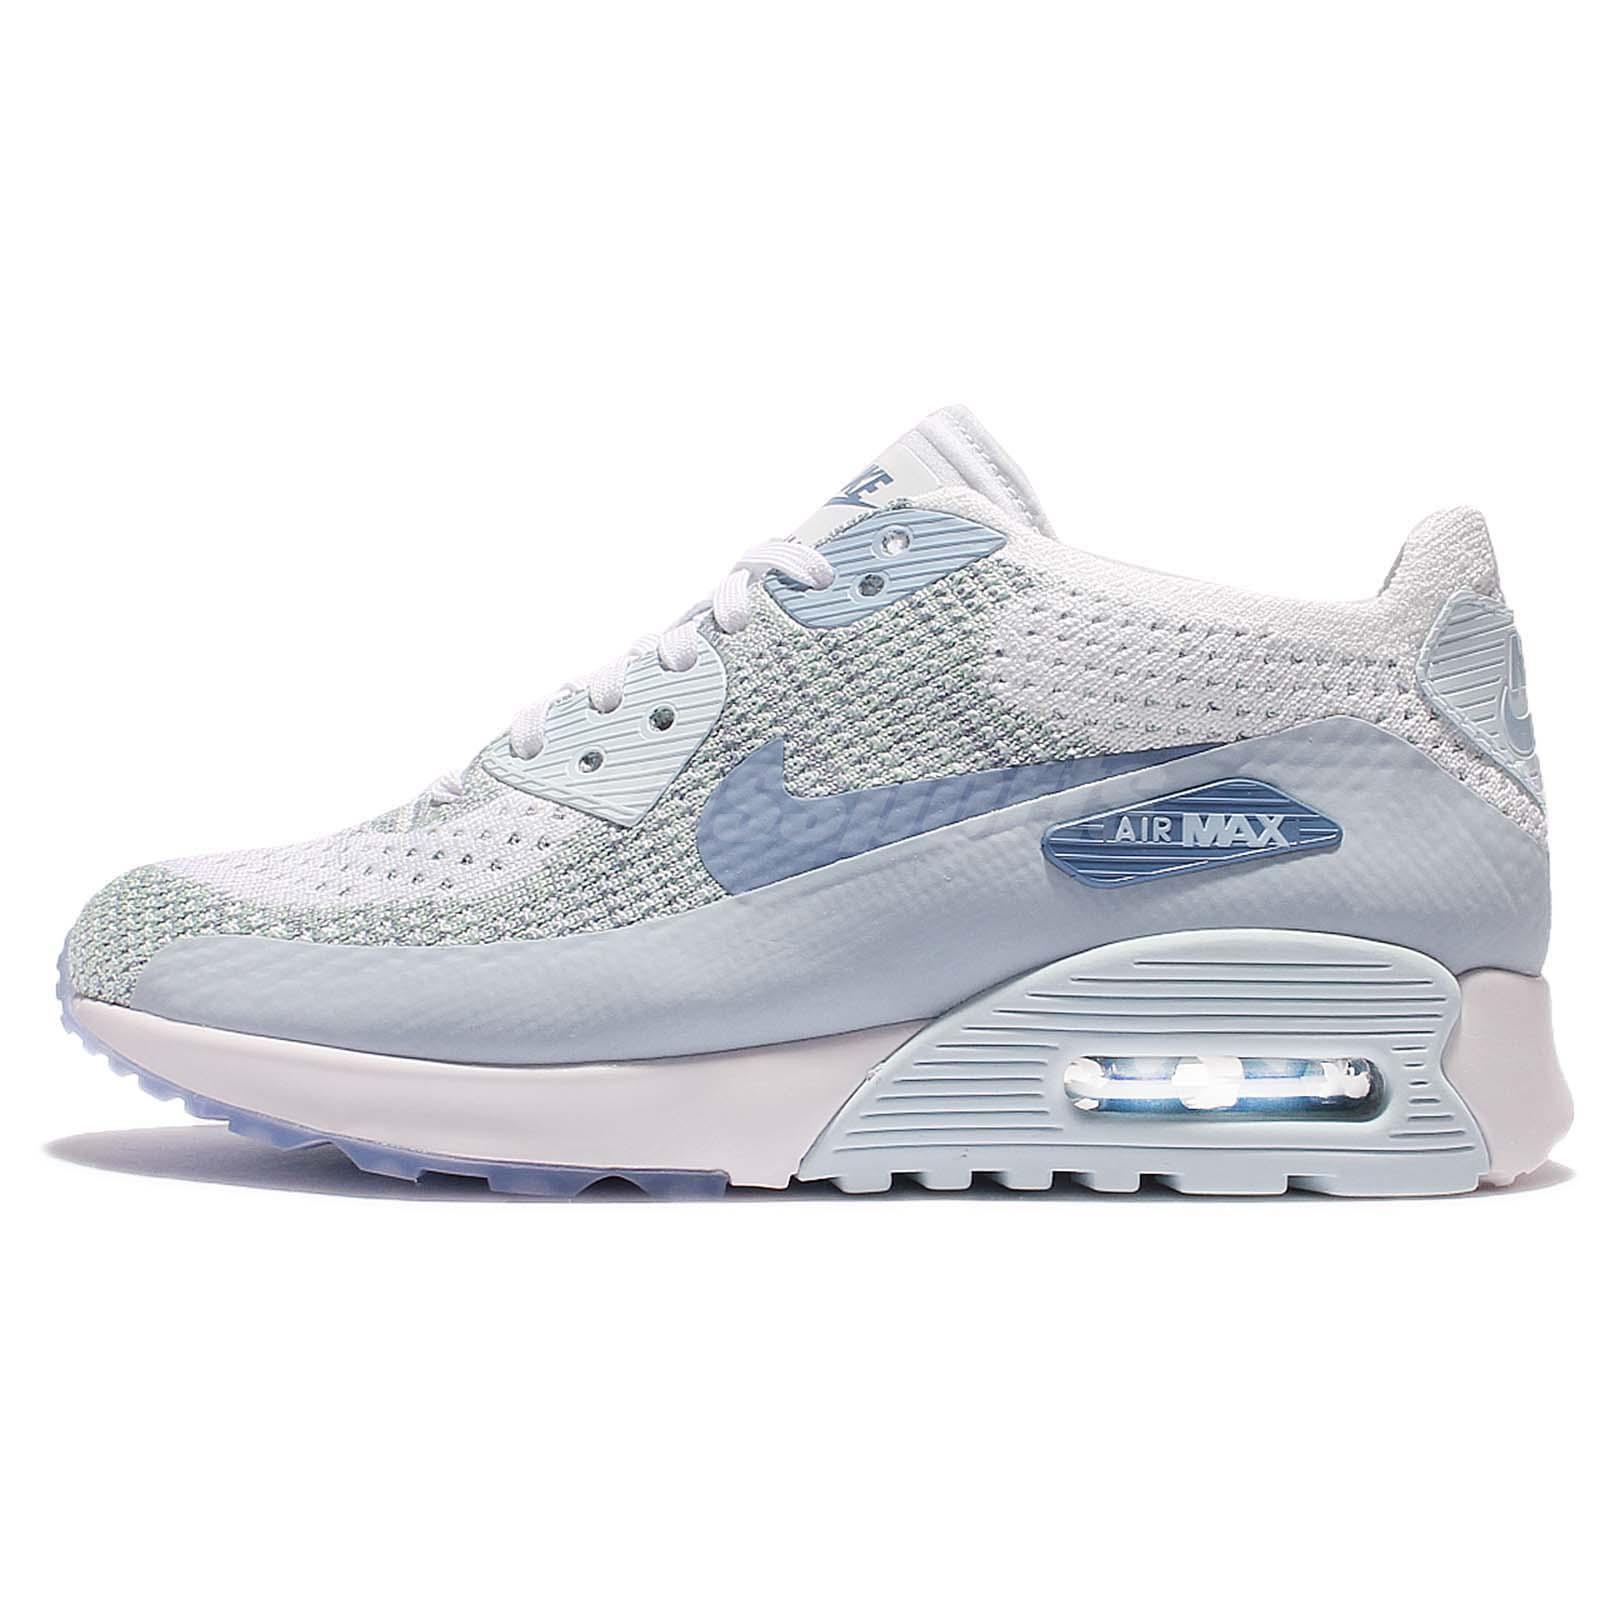 Wmns Nike Air Max 90 Ultra 2.0 Flyknit Women Casual Running Shoes NSW  881109-105